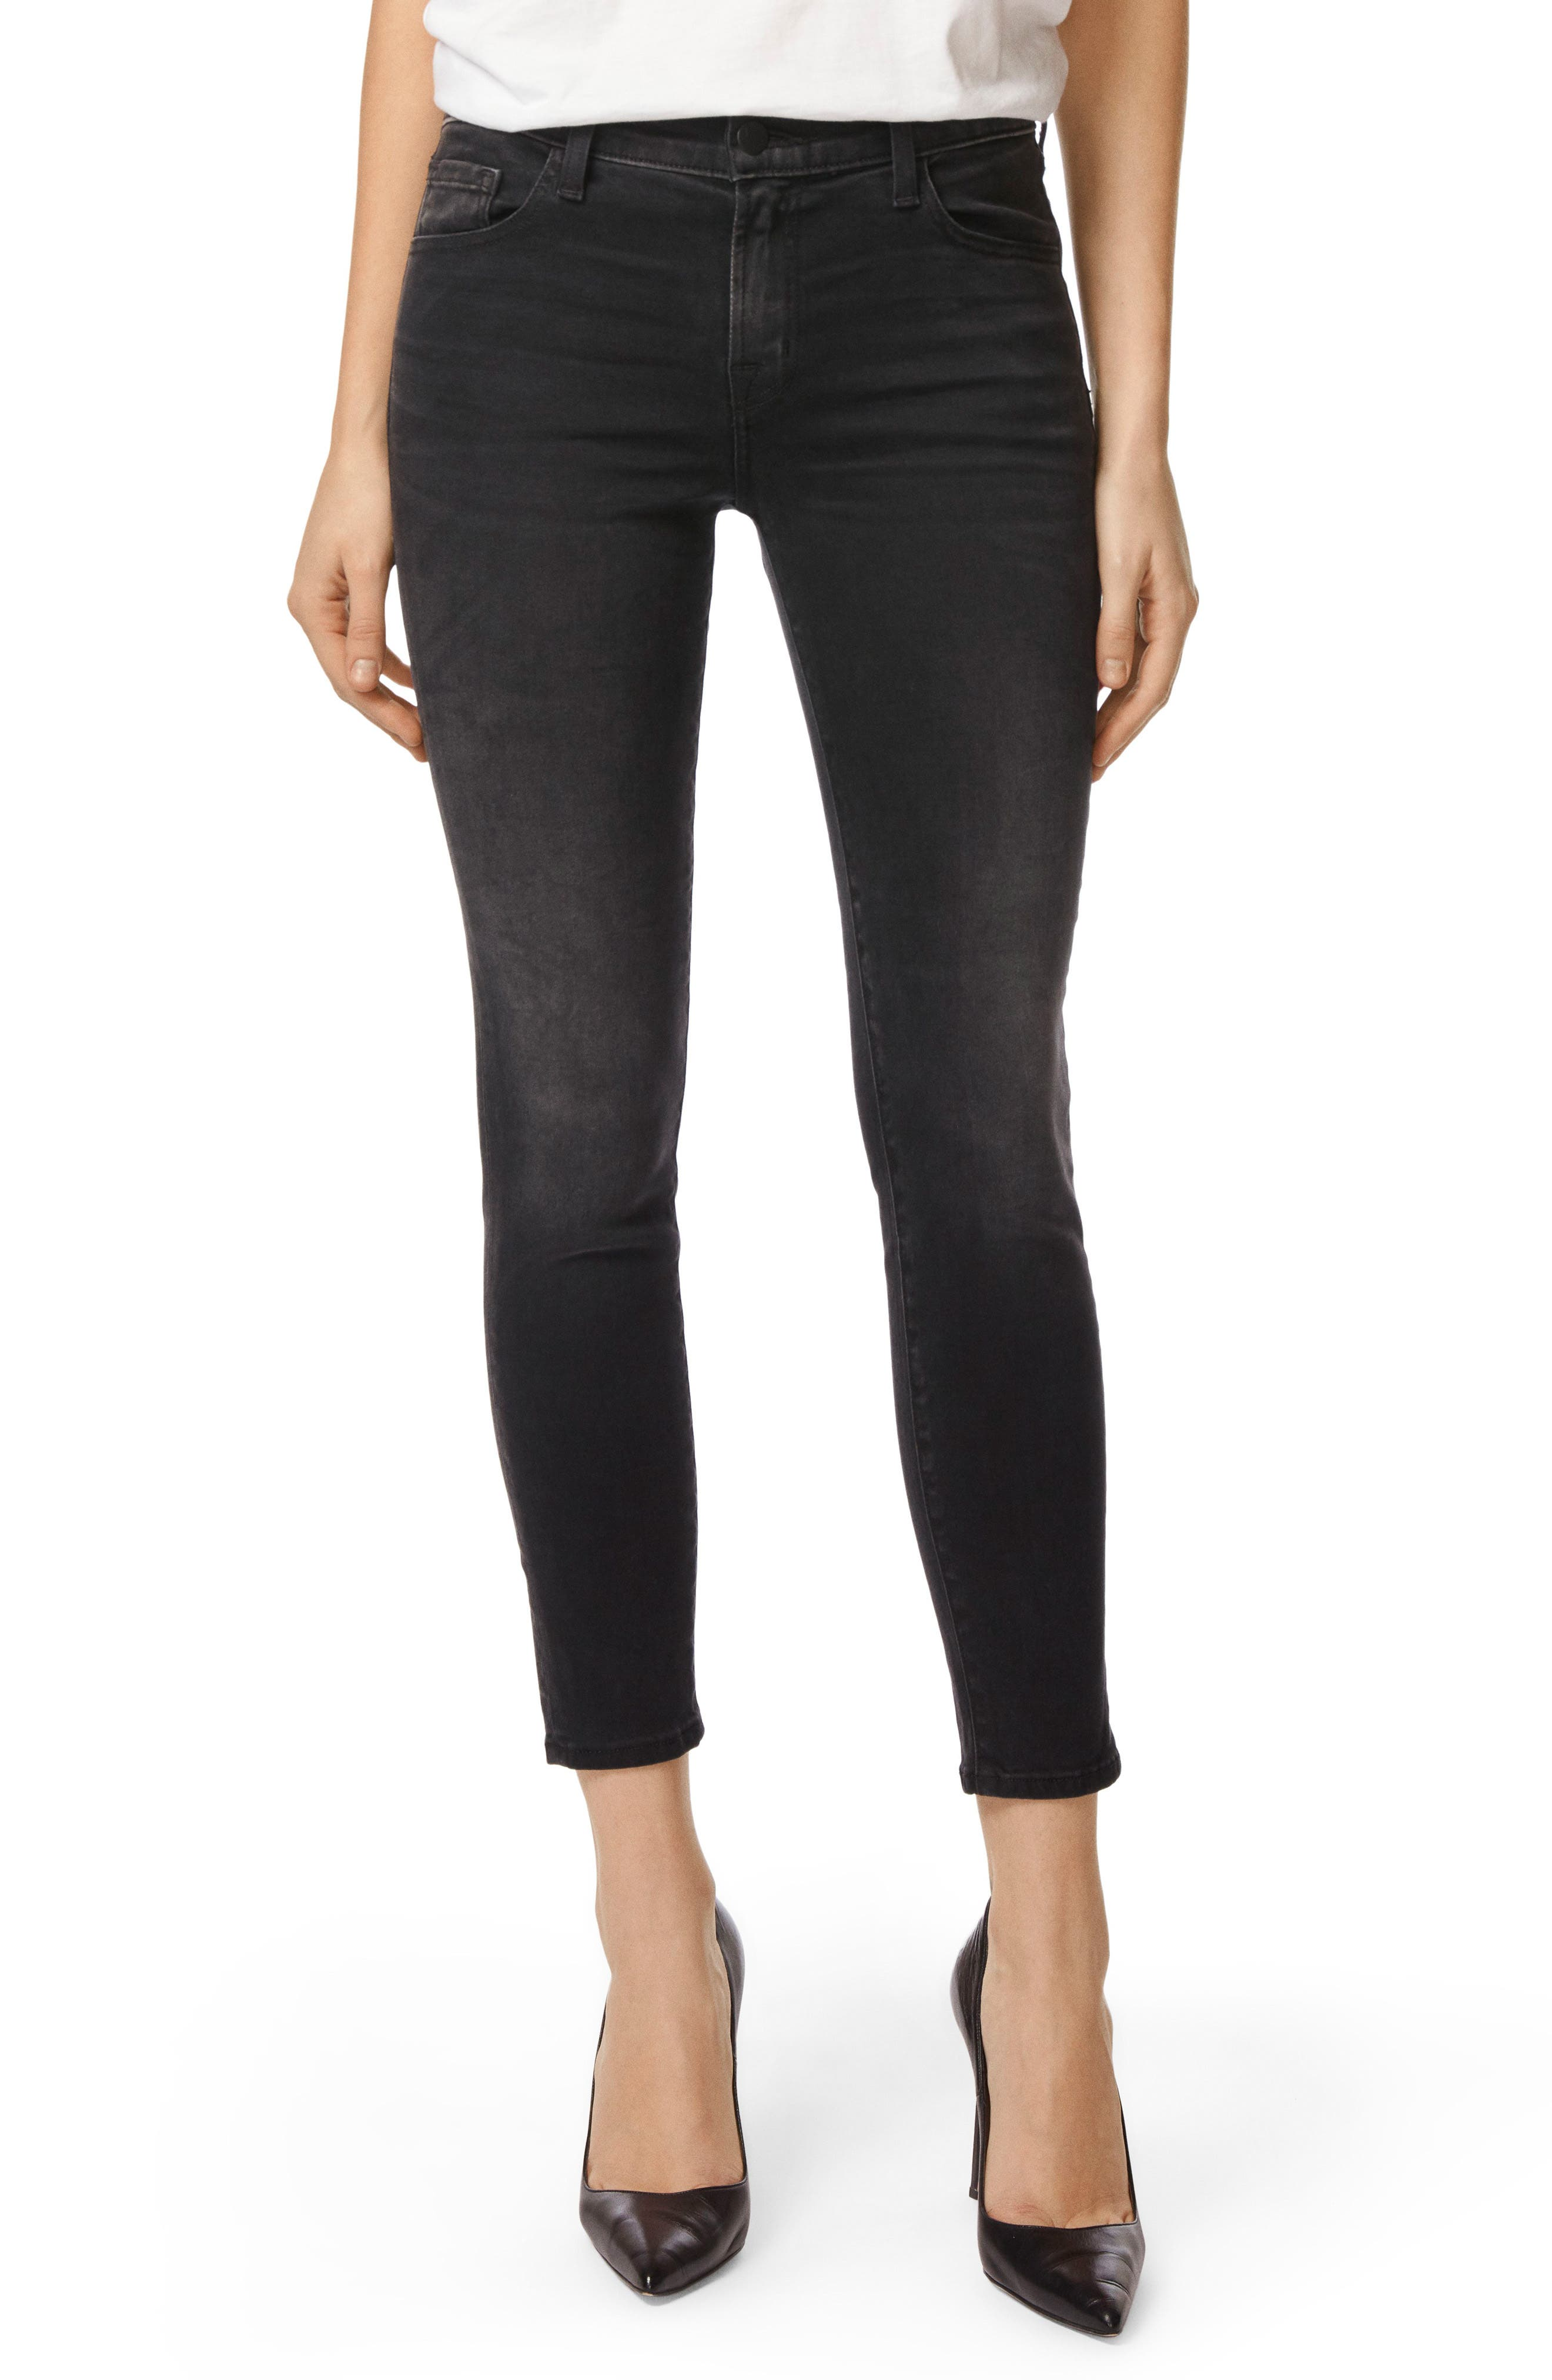 Capri Skinny Jeans,                         Main,                         color, 001